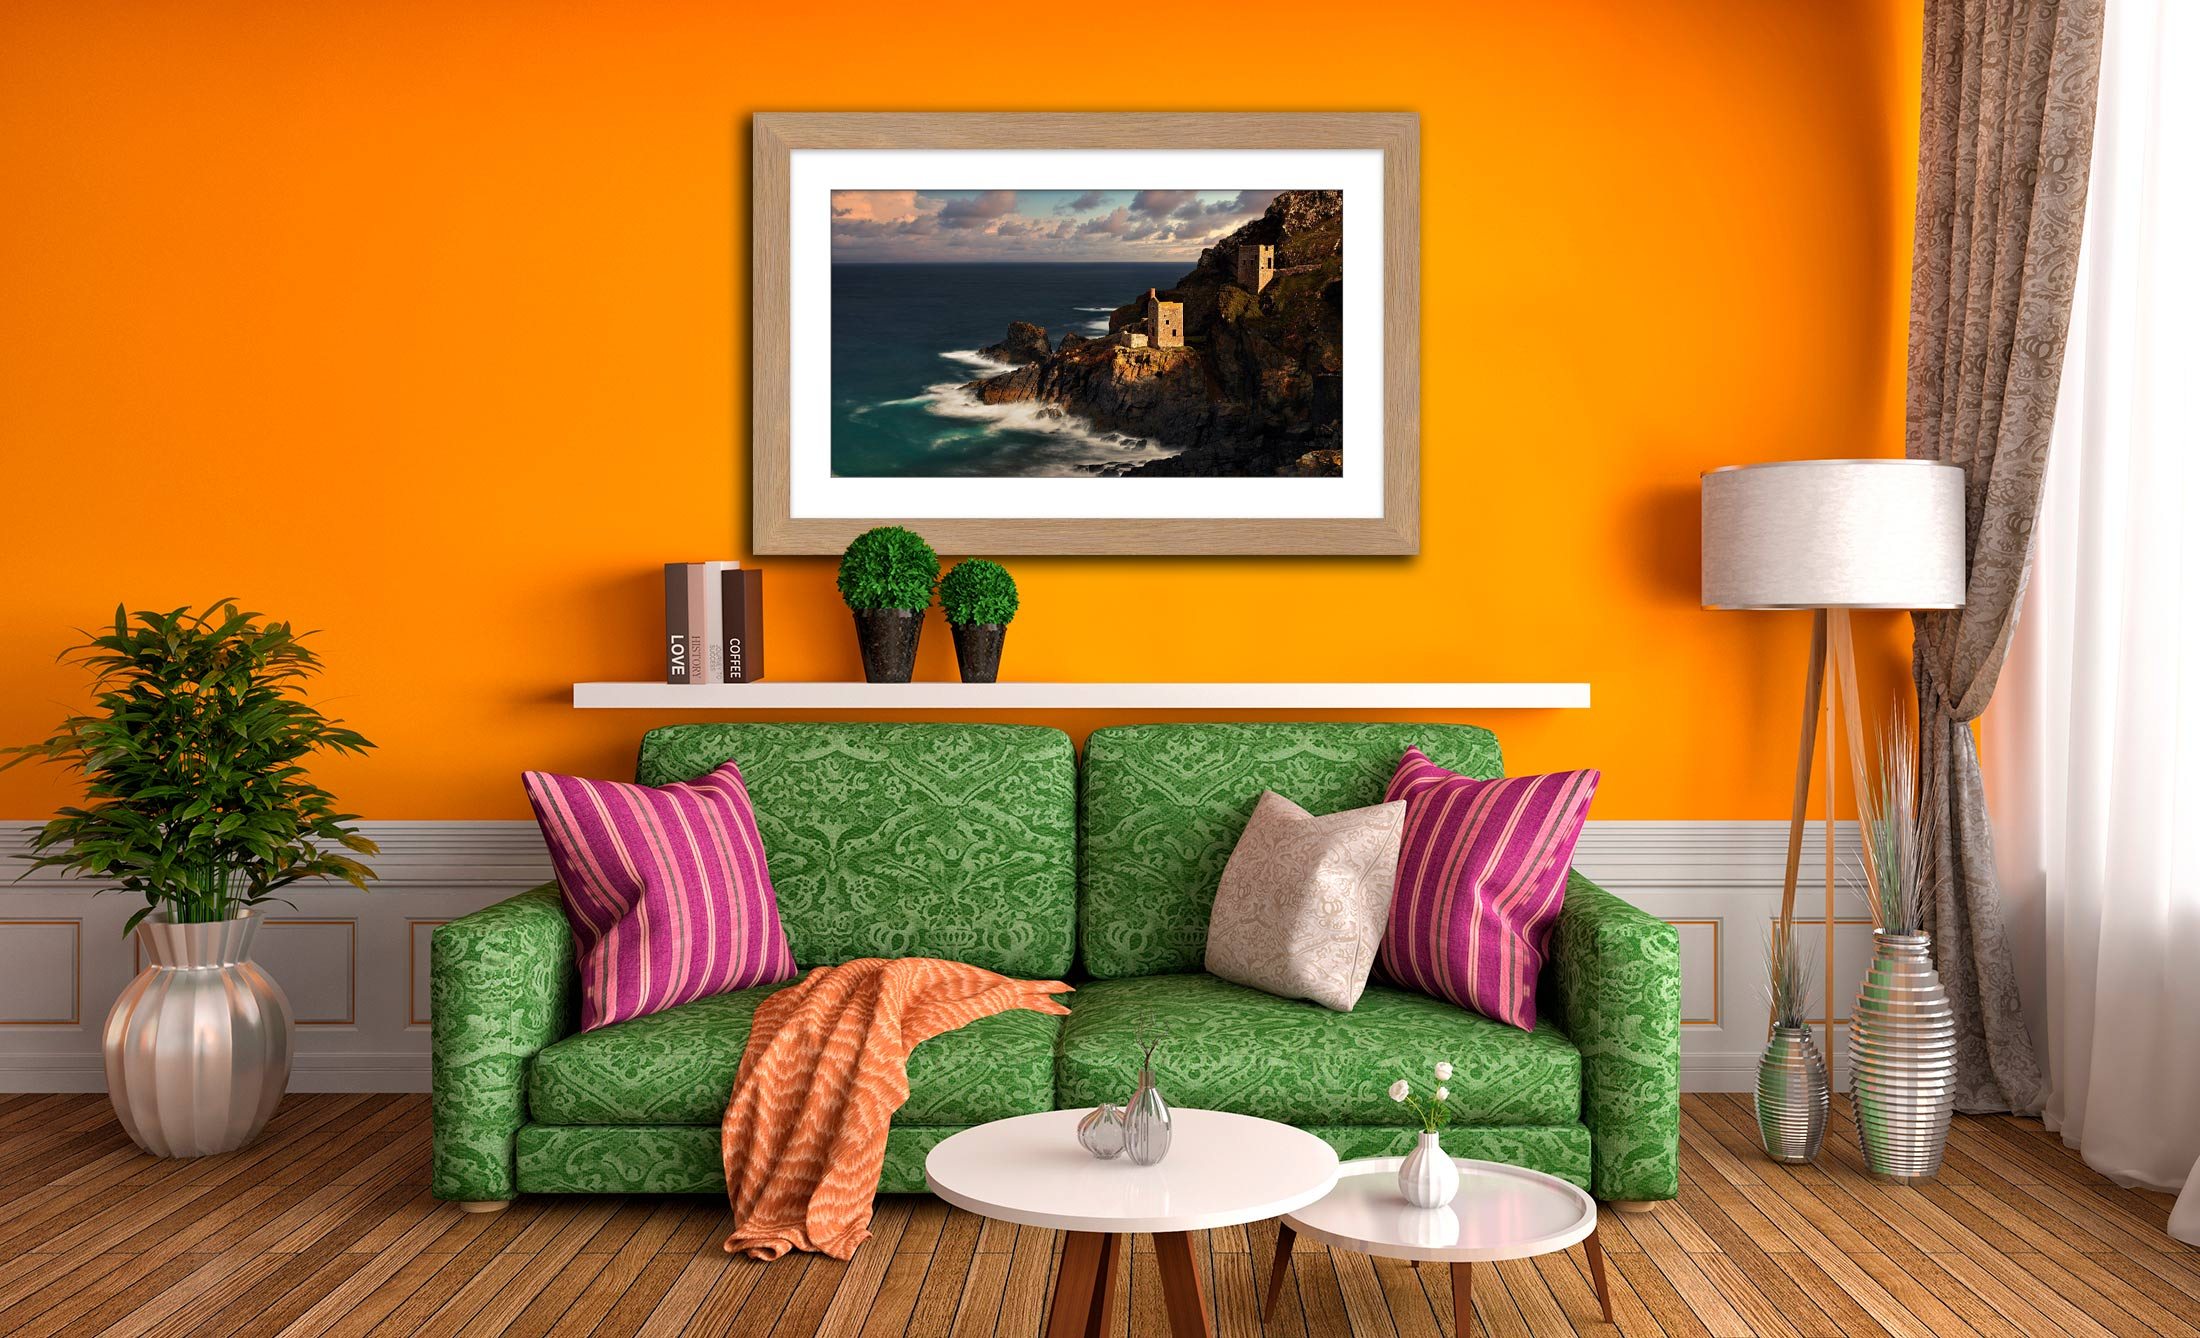 Botallack in the Sunshine - Framed Print with Mount on Wall